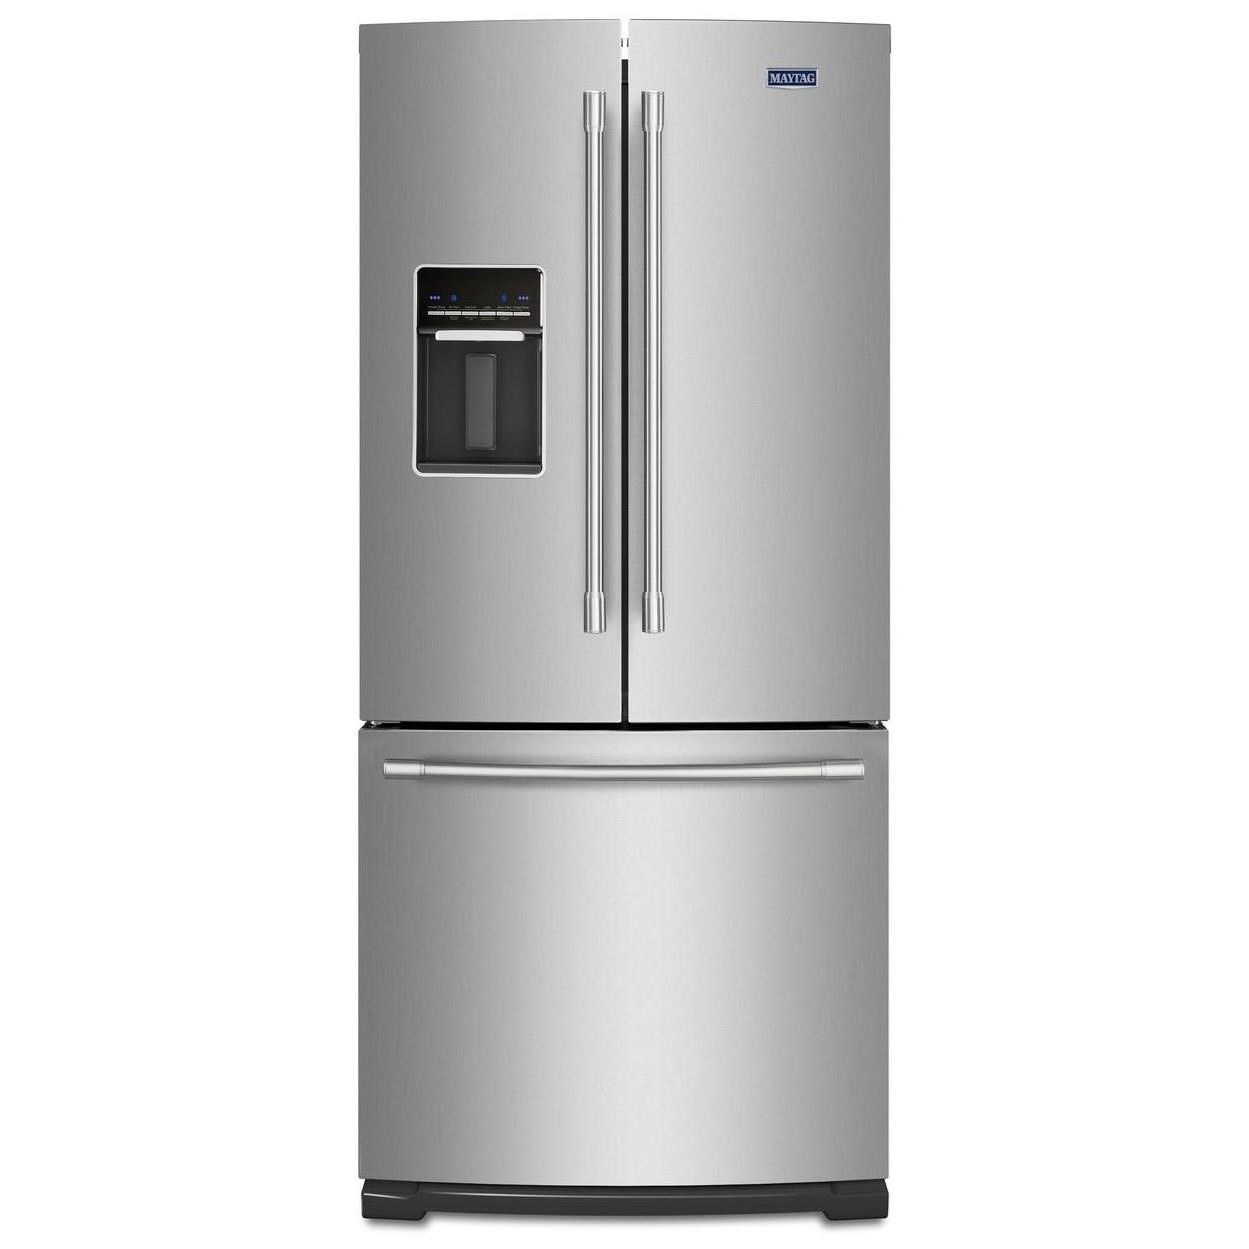 Maytag 30 Inch Wide French Door Refrigerator With Exterior